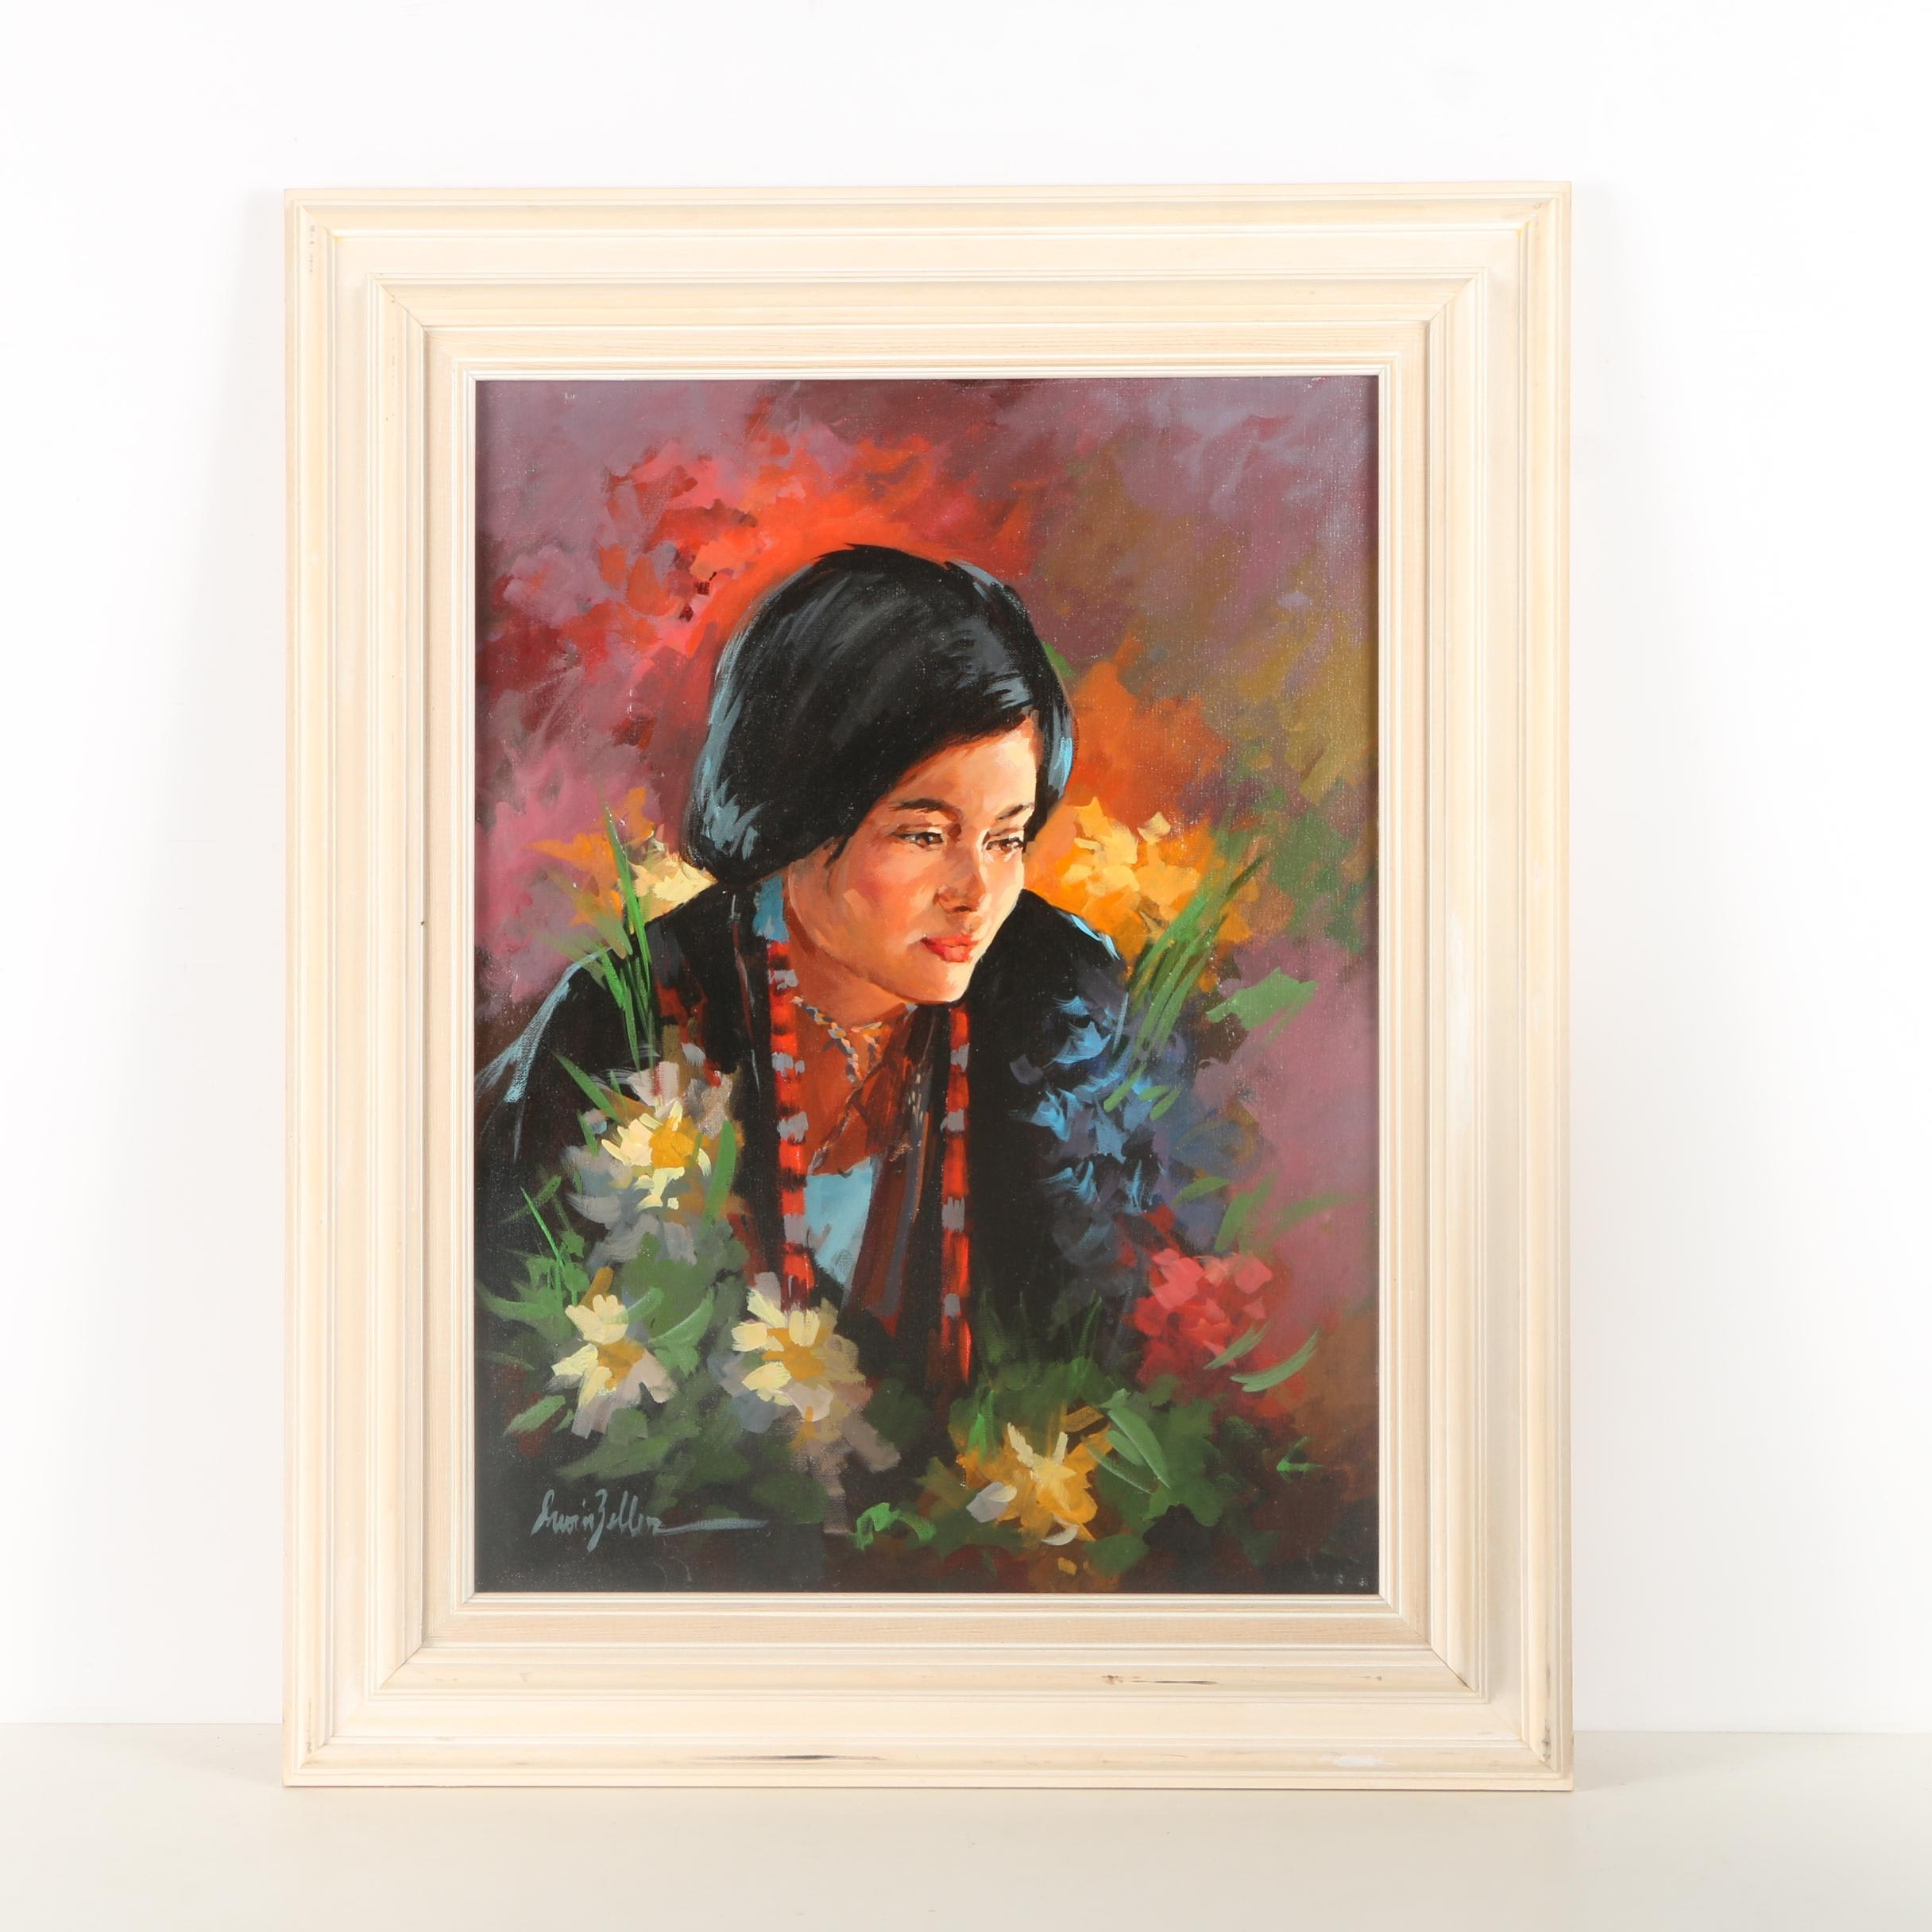 Irwin Zeller Oil Painting on Canvas of Woman